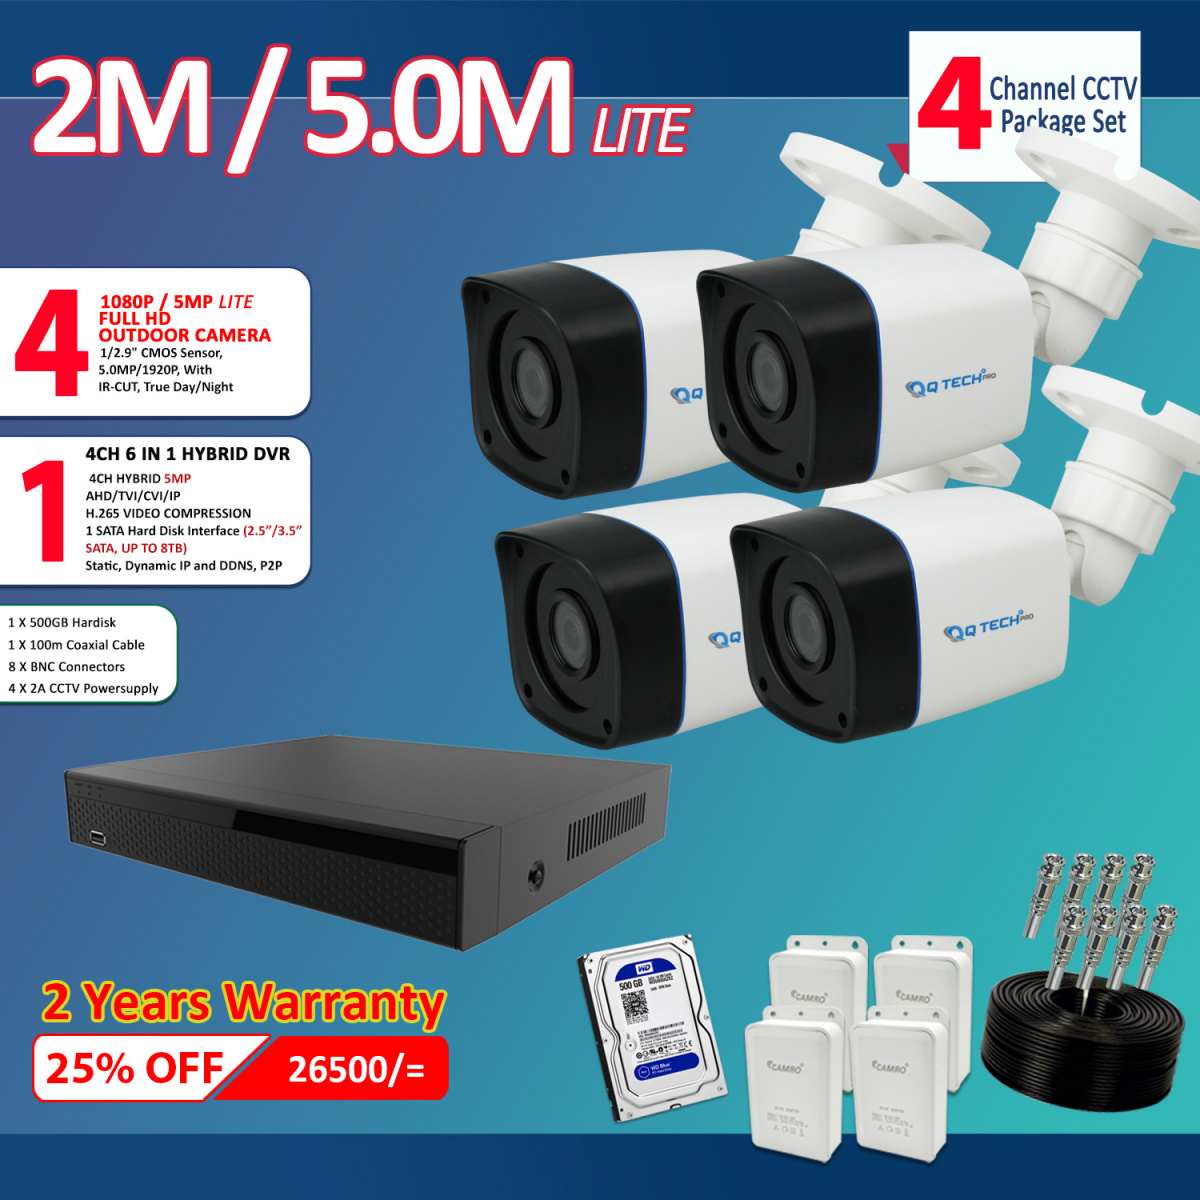 2 M CAMERA PACKAGES